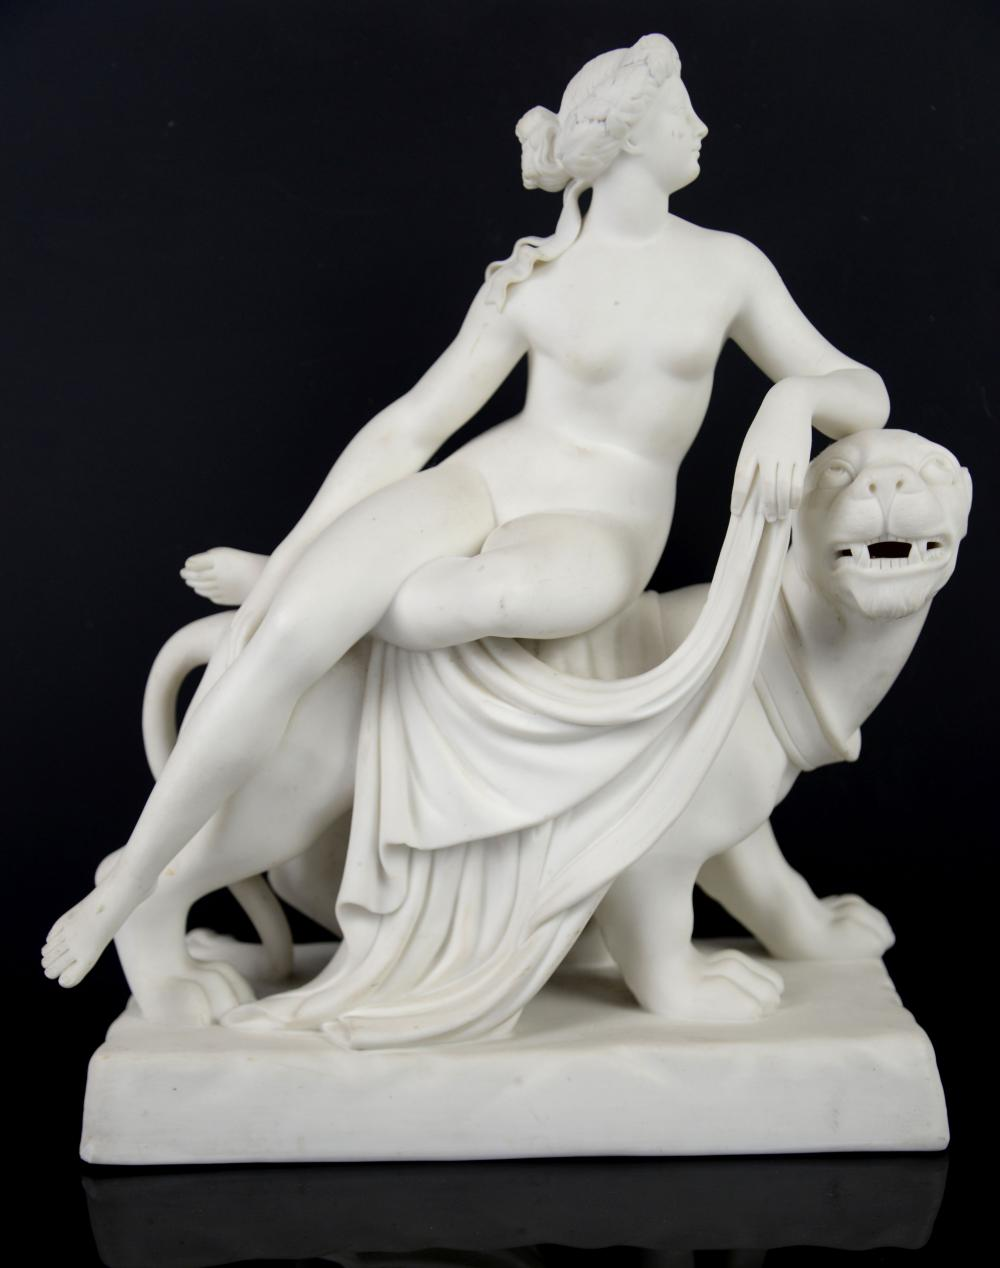 Minton parianware figural group of Ariadne on a pa